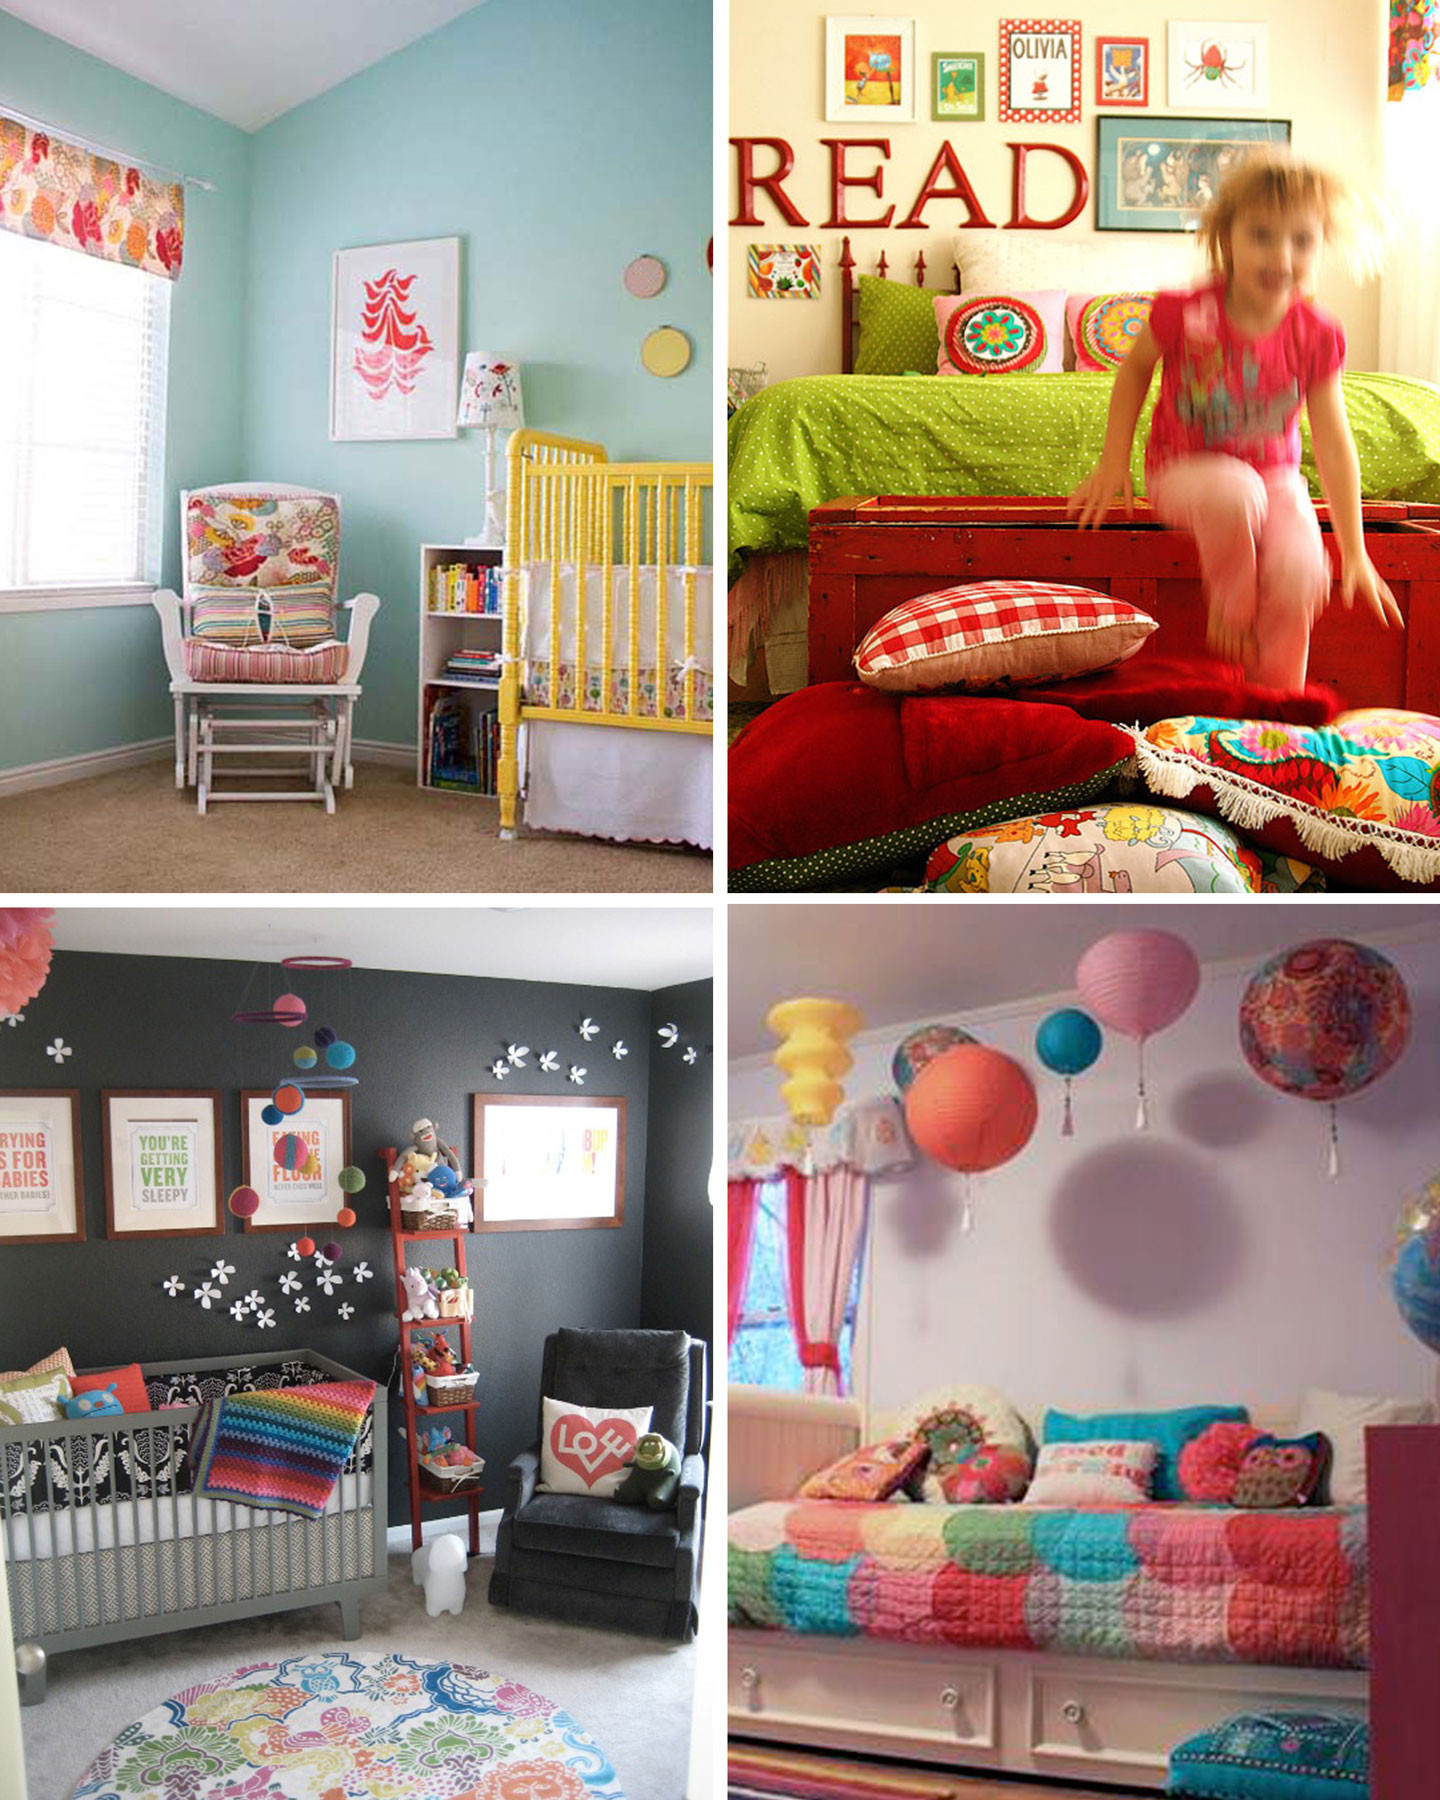 Best ideas about DIY Kids Room Ideas . Save or Pin DIY Friday Kids Room Inspiration Now.